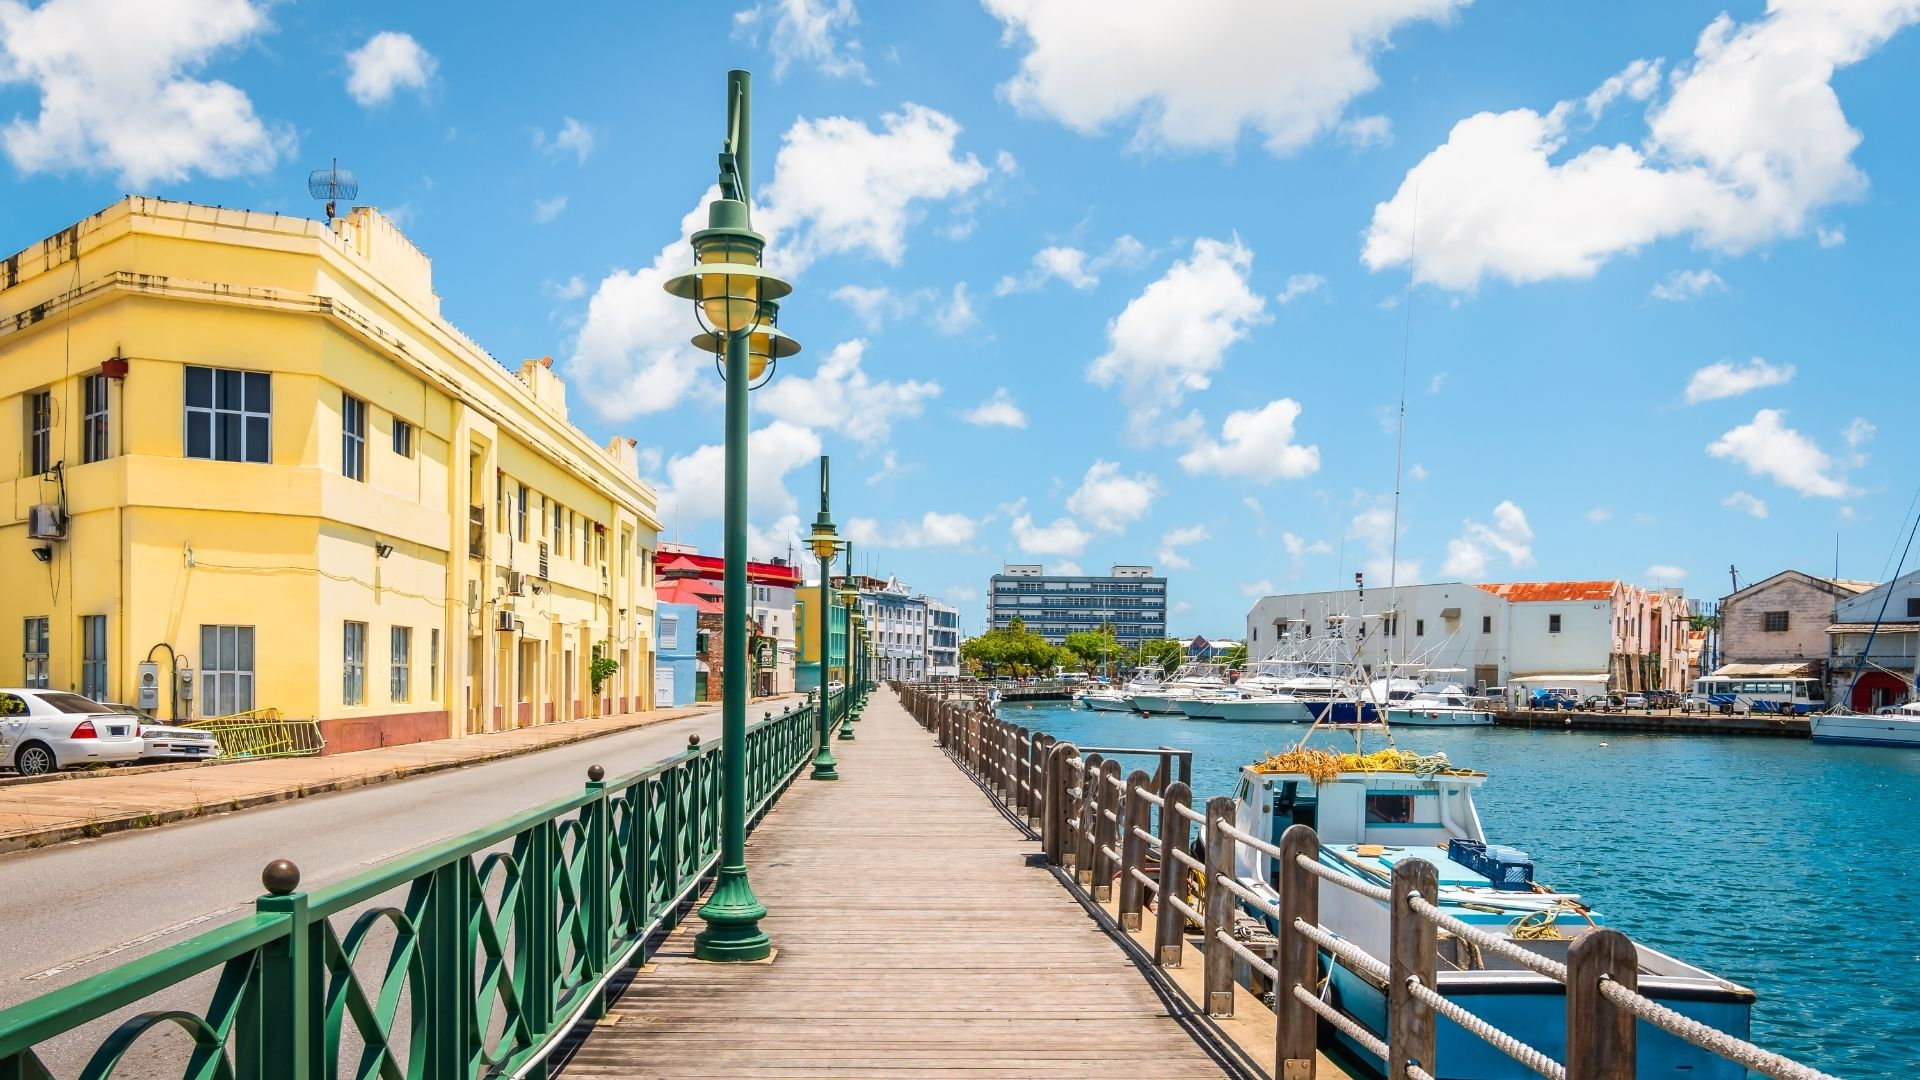 Bridgetown cheap traveling places caribbean